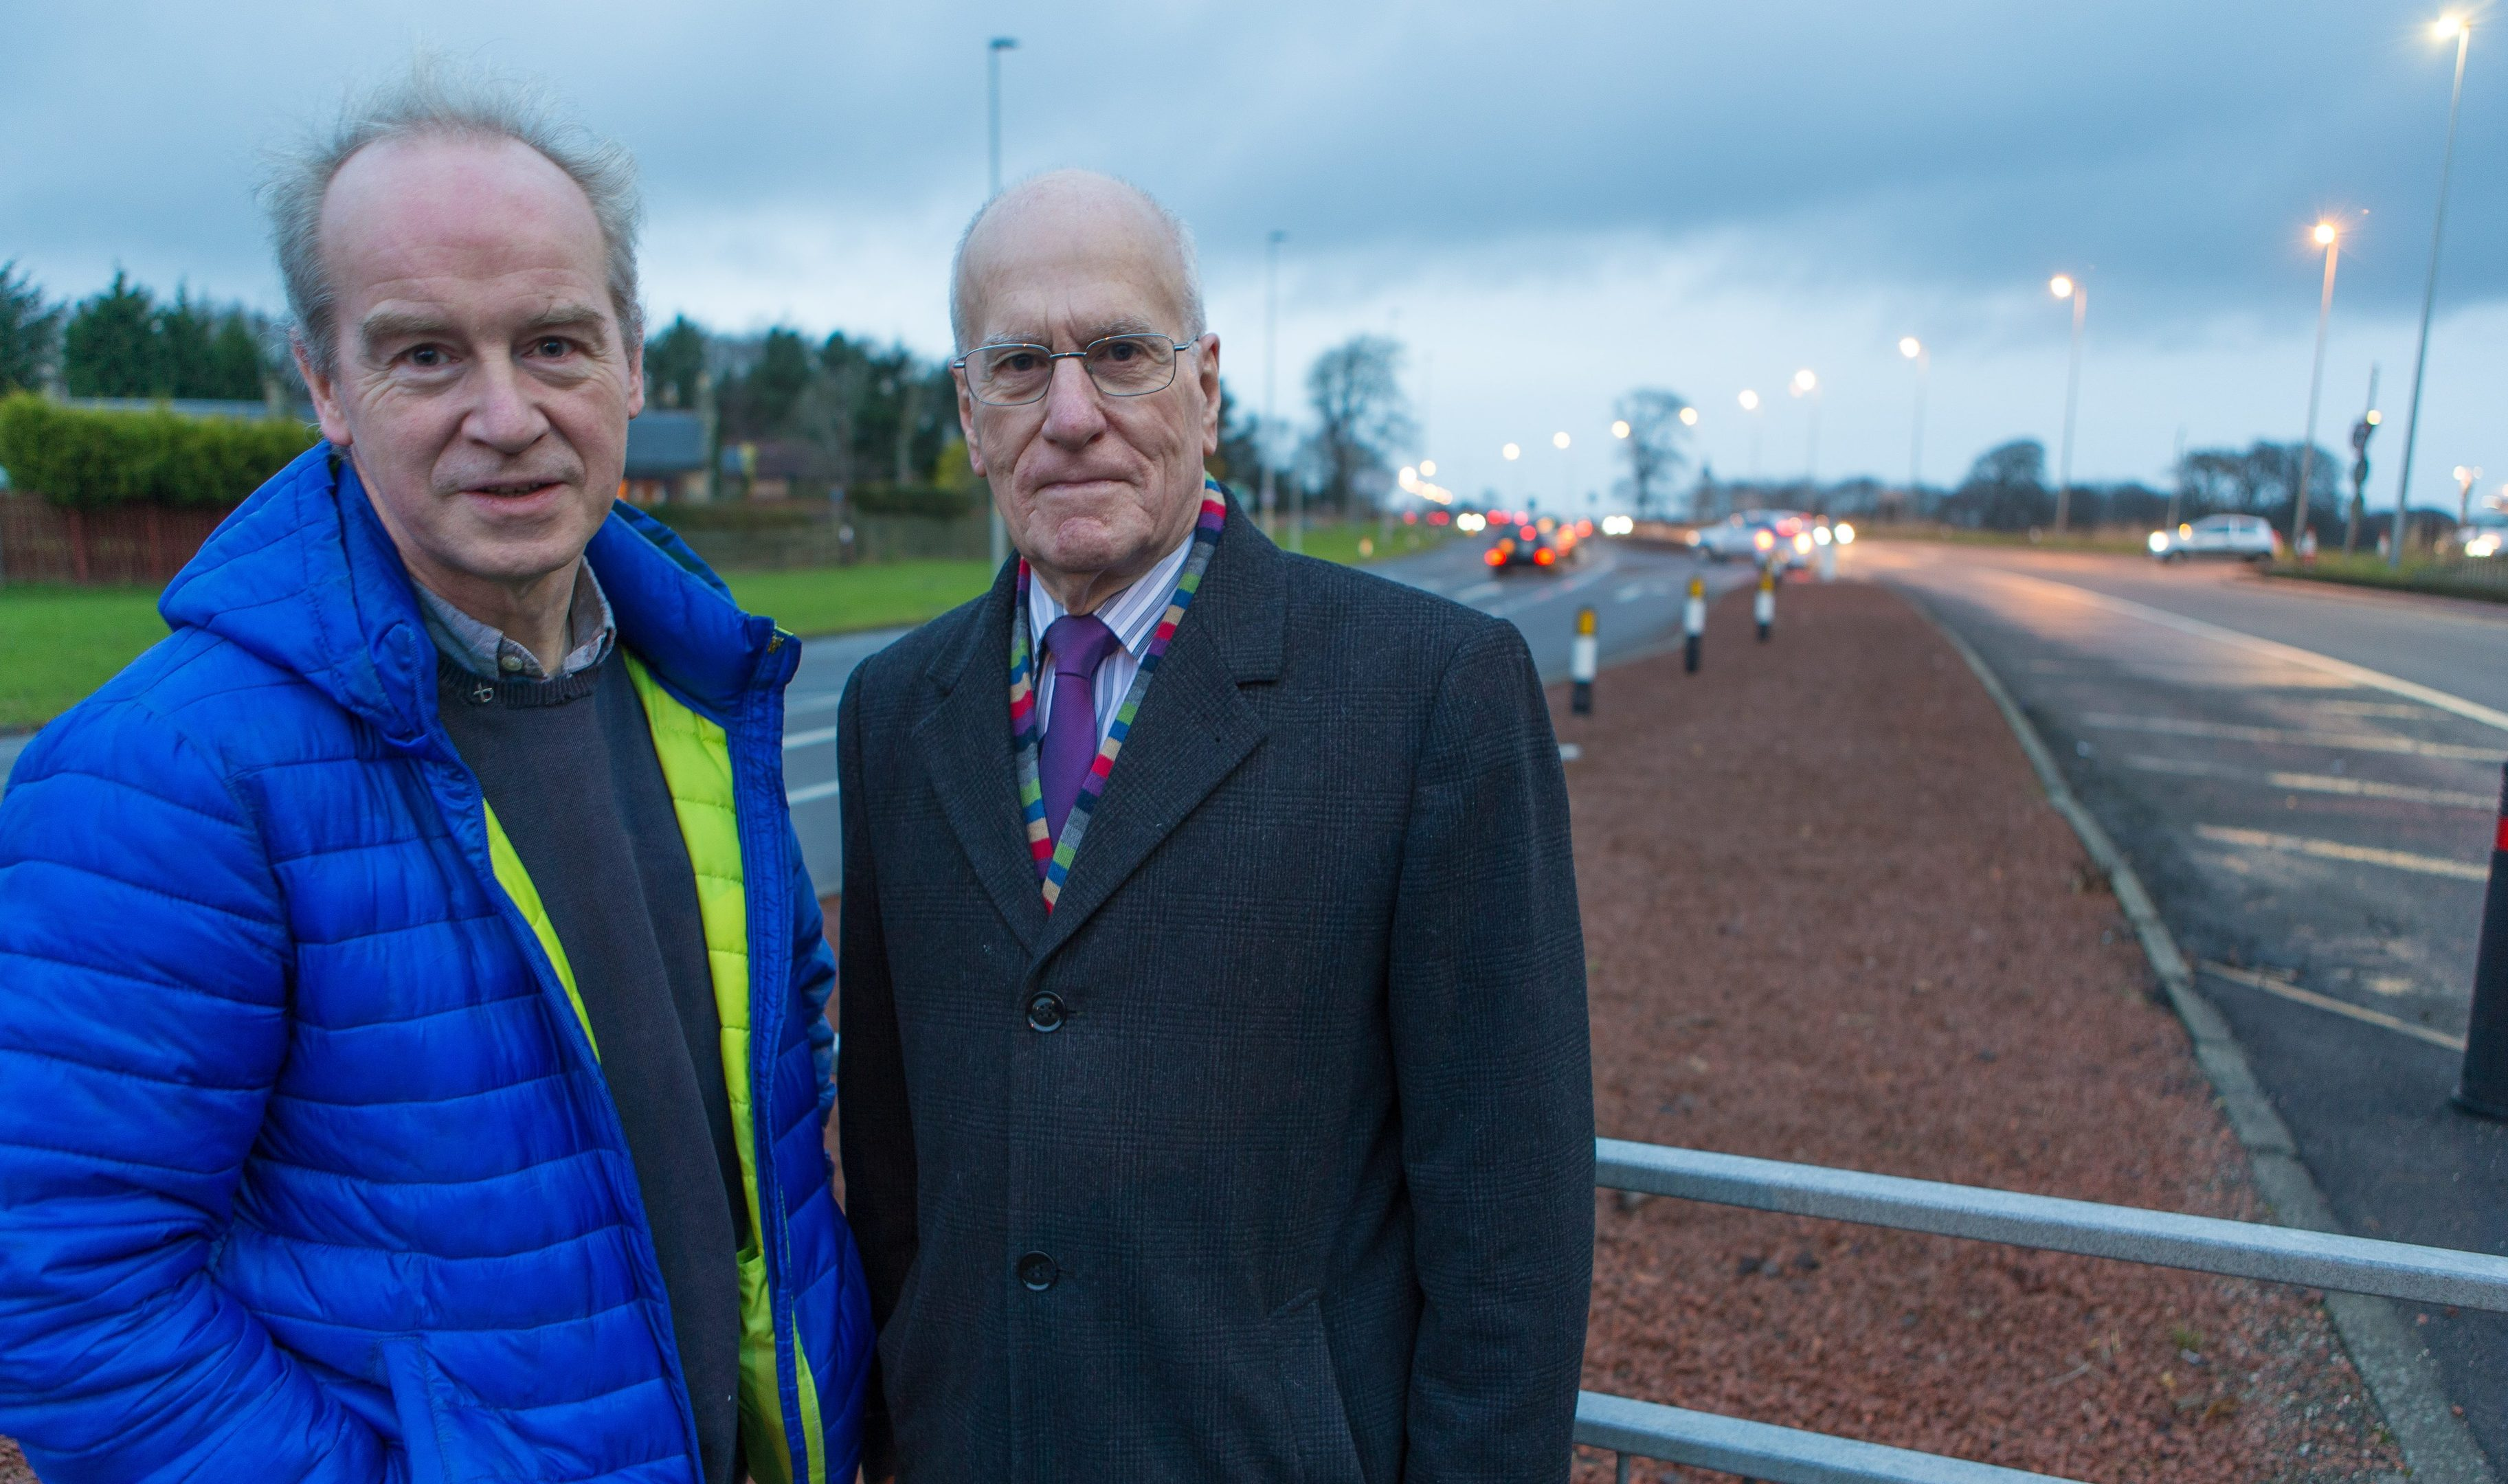 Councillor John Beare and Councillor Ross Vettraino beside the A92 at Balfarg, where a roundabout has been mooted.